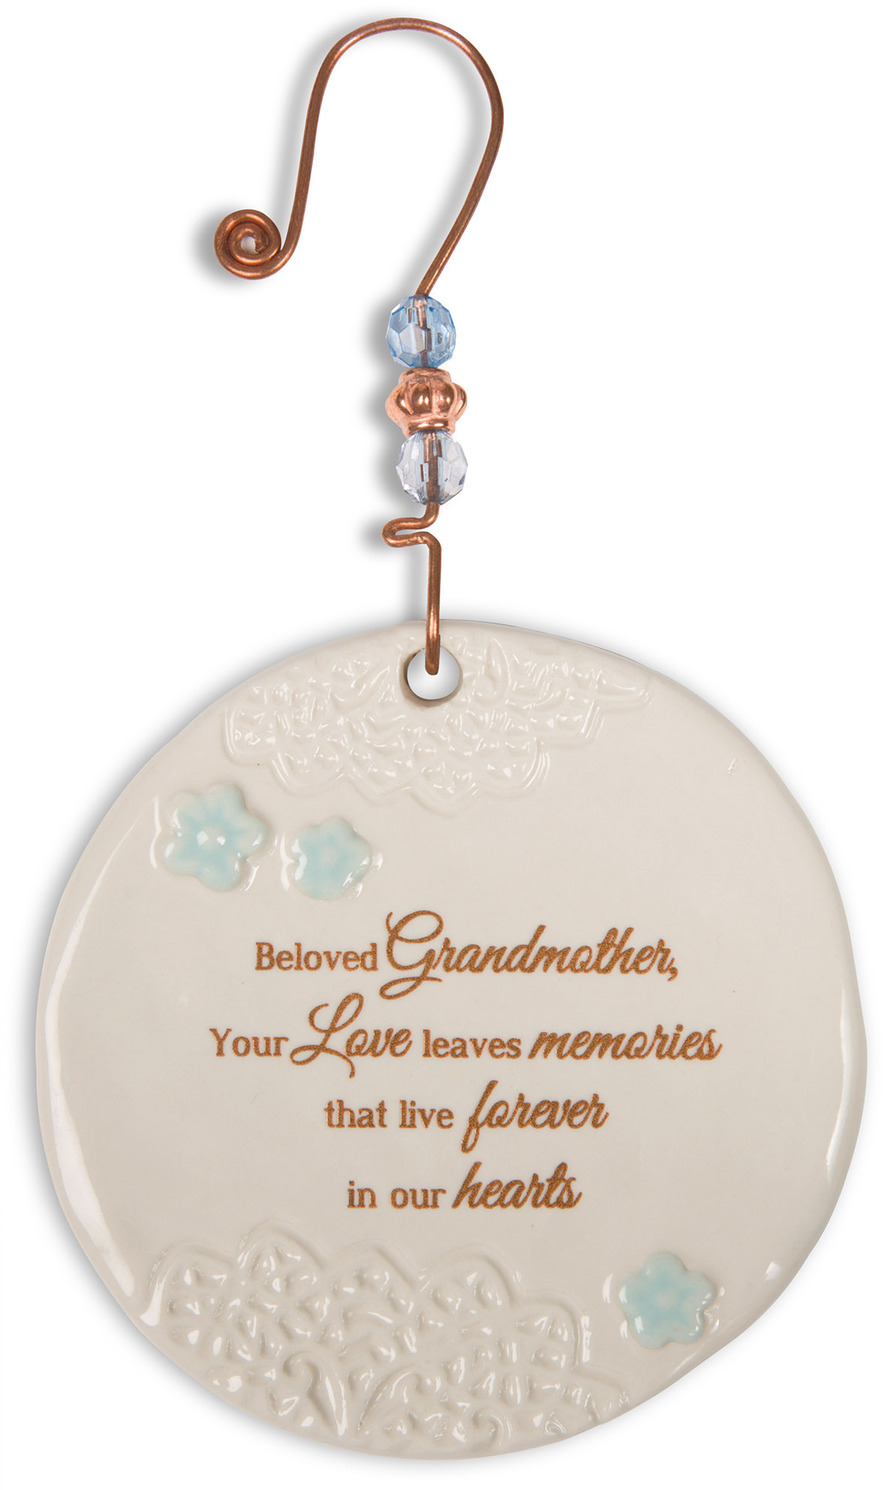 "Beloved Grandmother by Light Your Way Memorial - Beloved Grandmother - 3.5"" Ceramic Ornament"